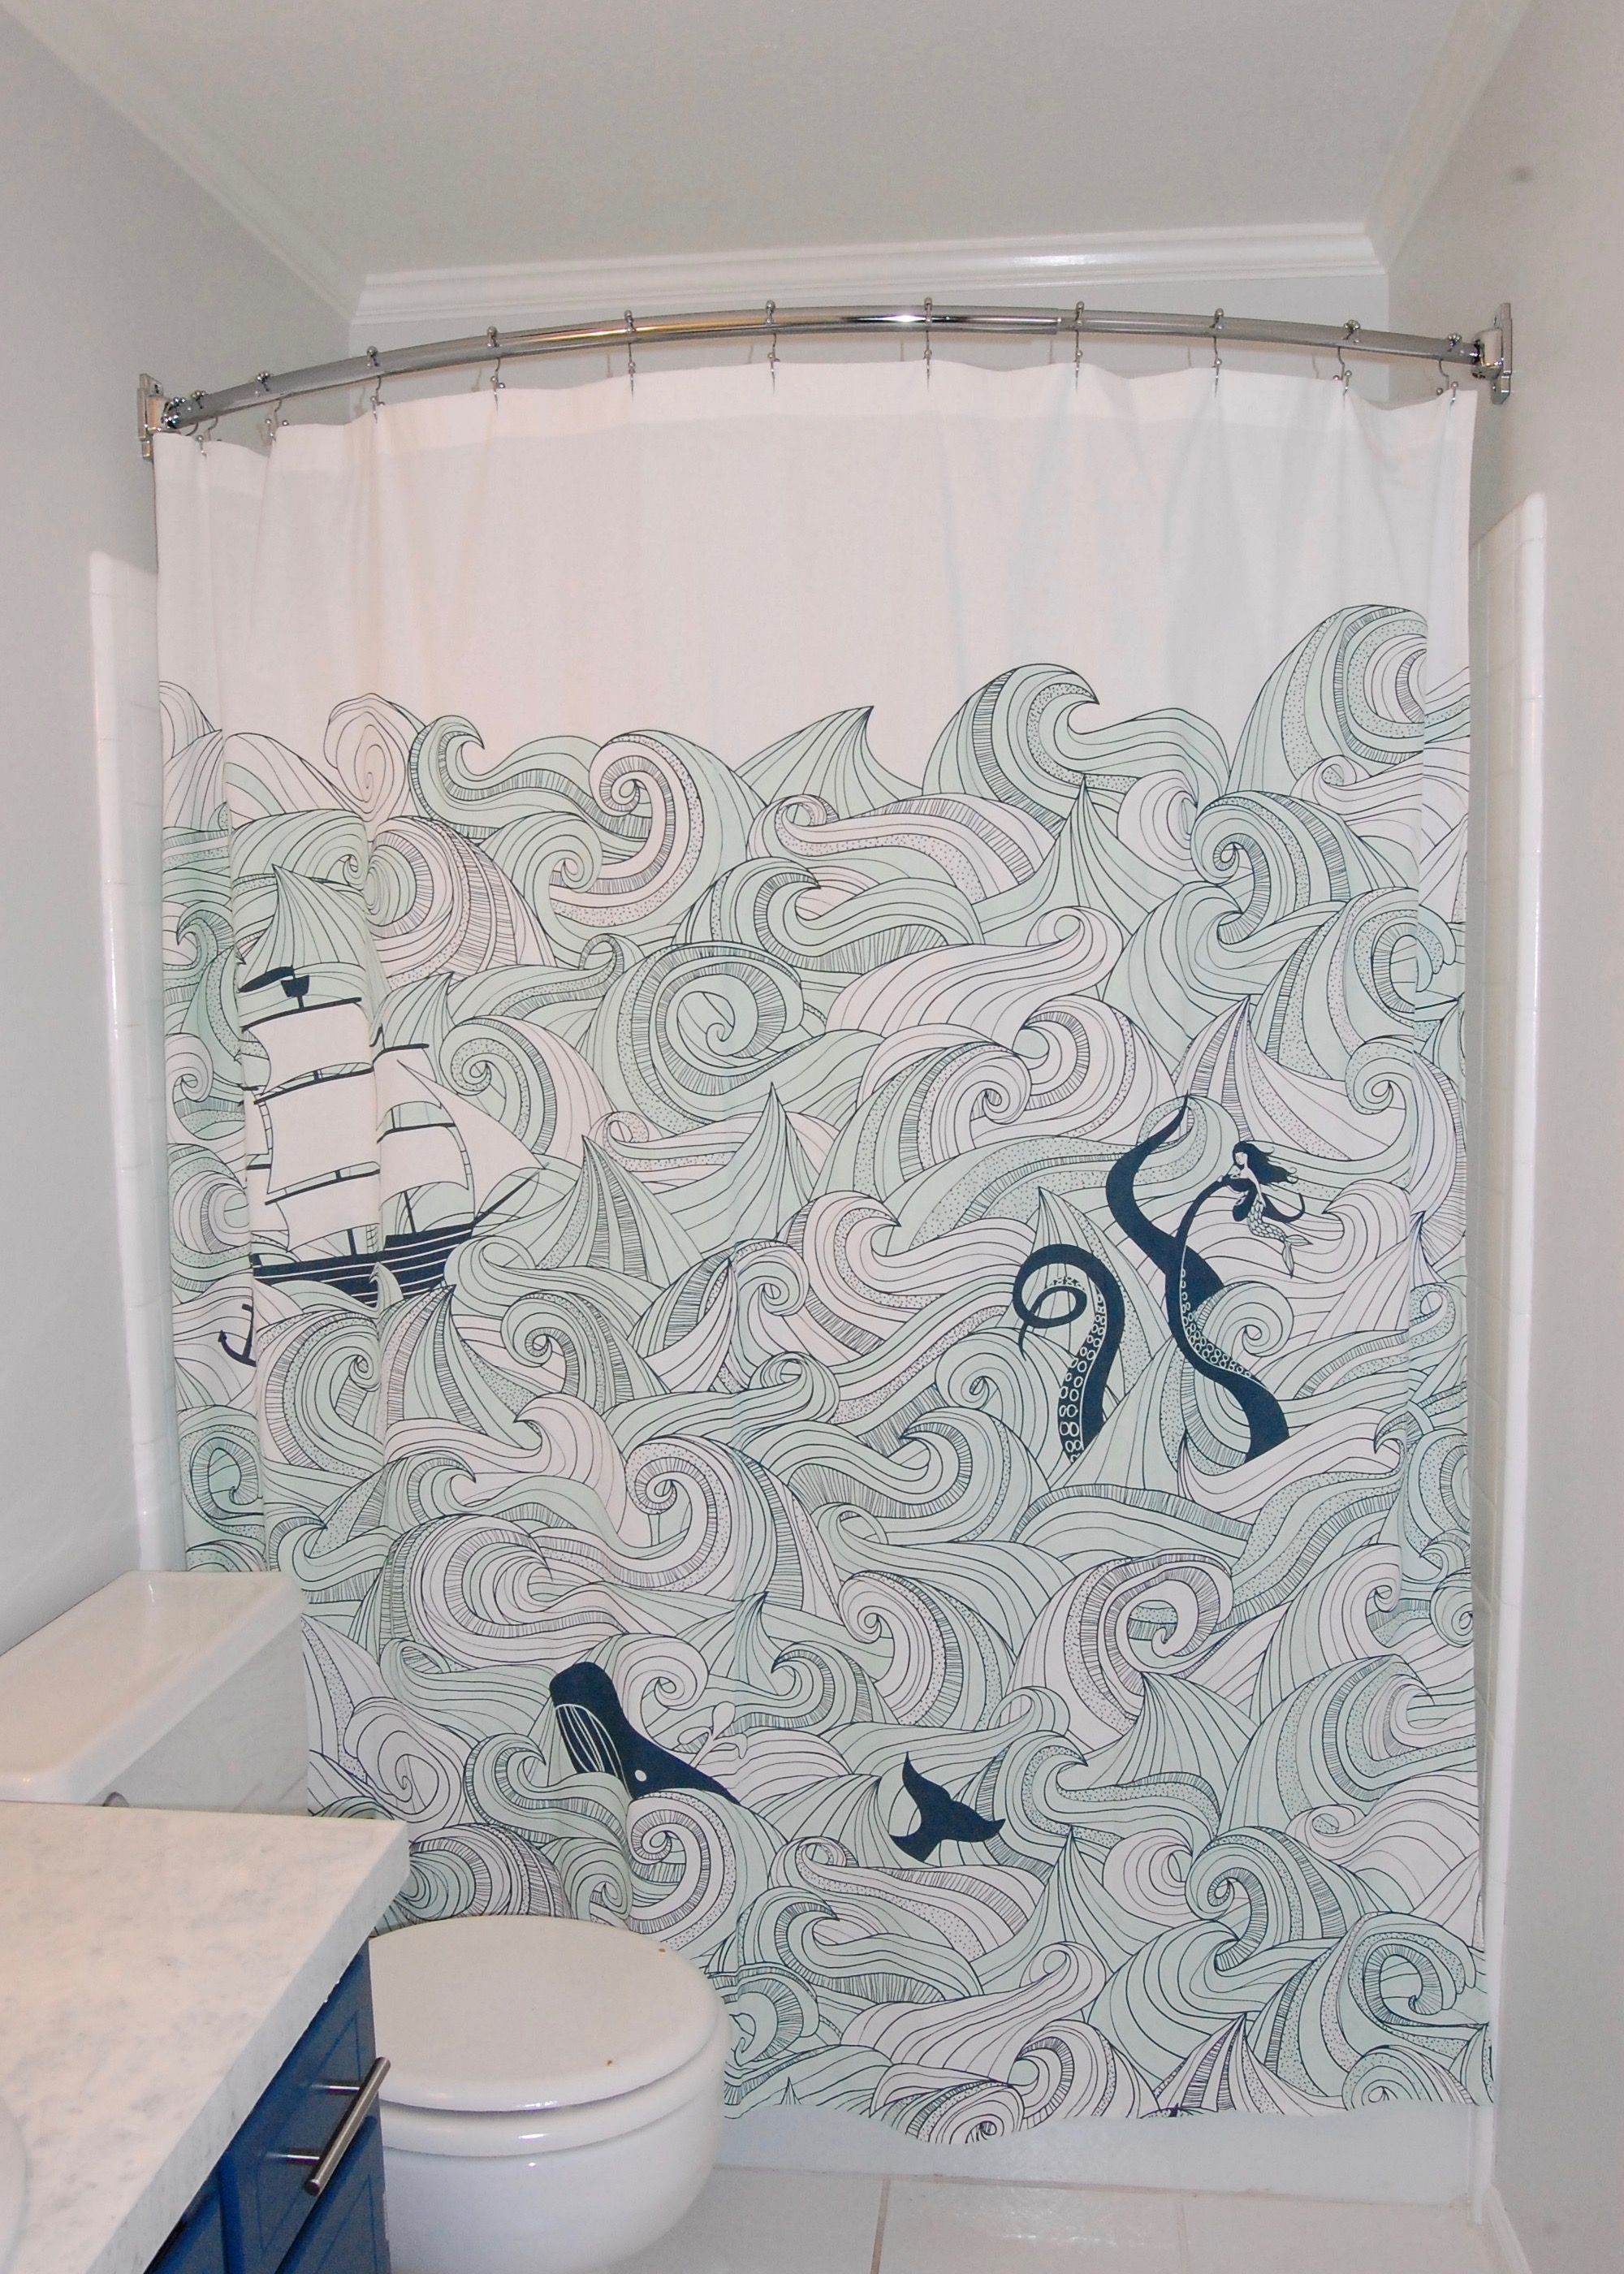 At What Height Should A Shower Curtain Be Installed